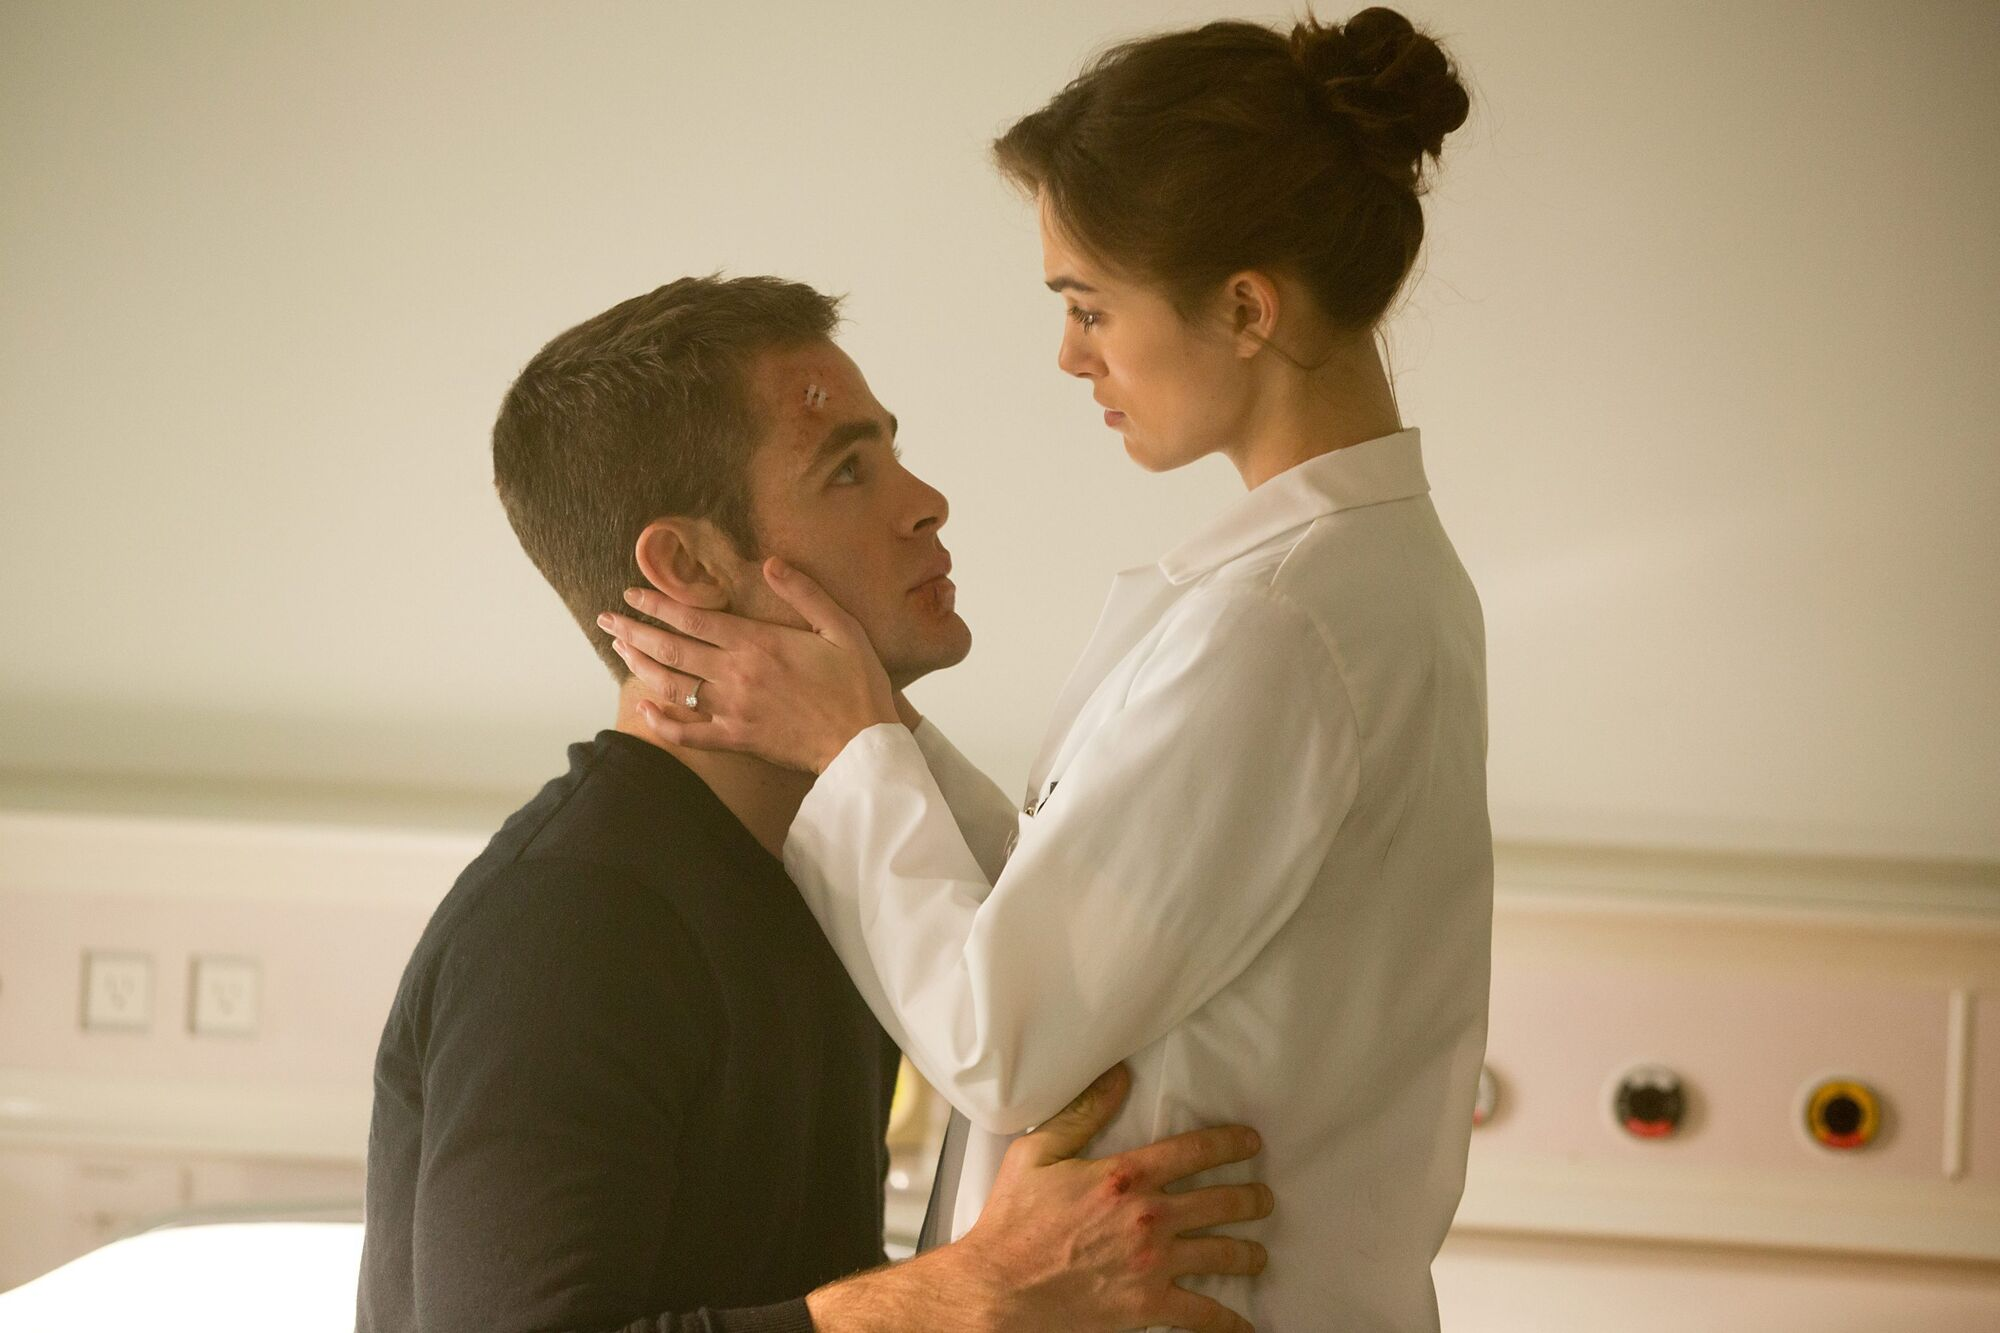 Keira Knightley, right, and Chris Pine in